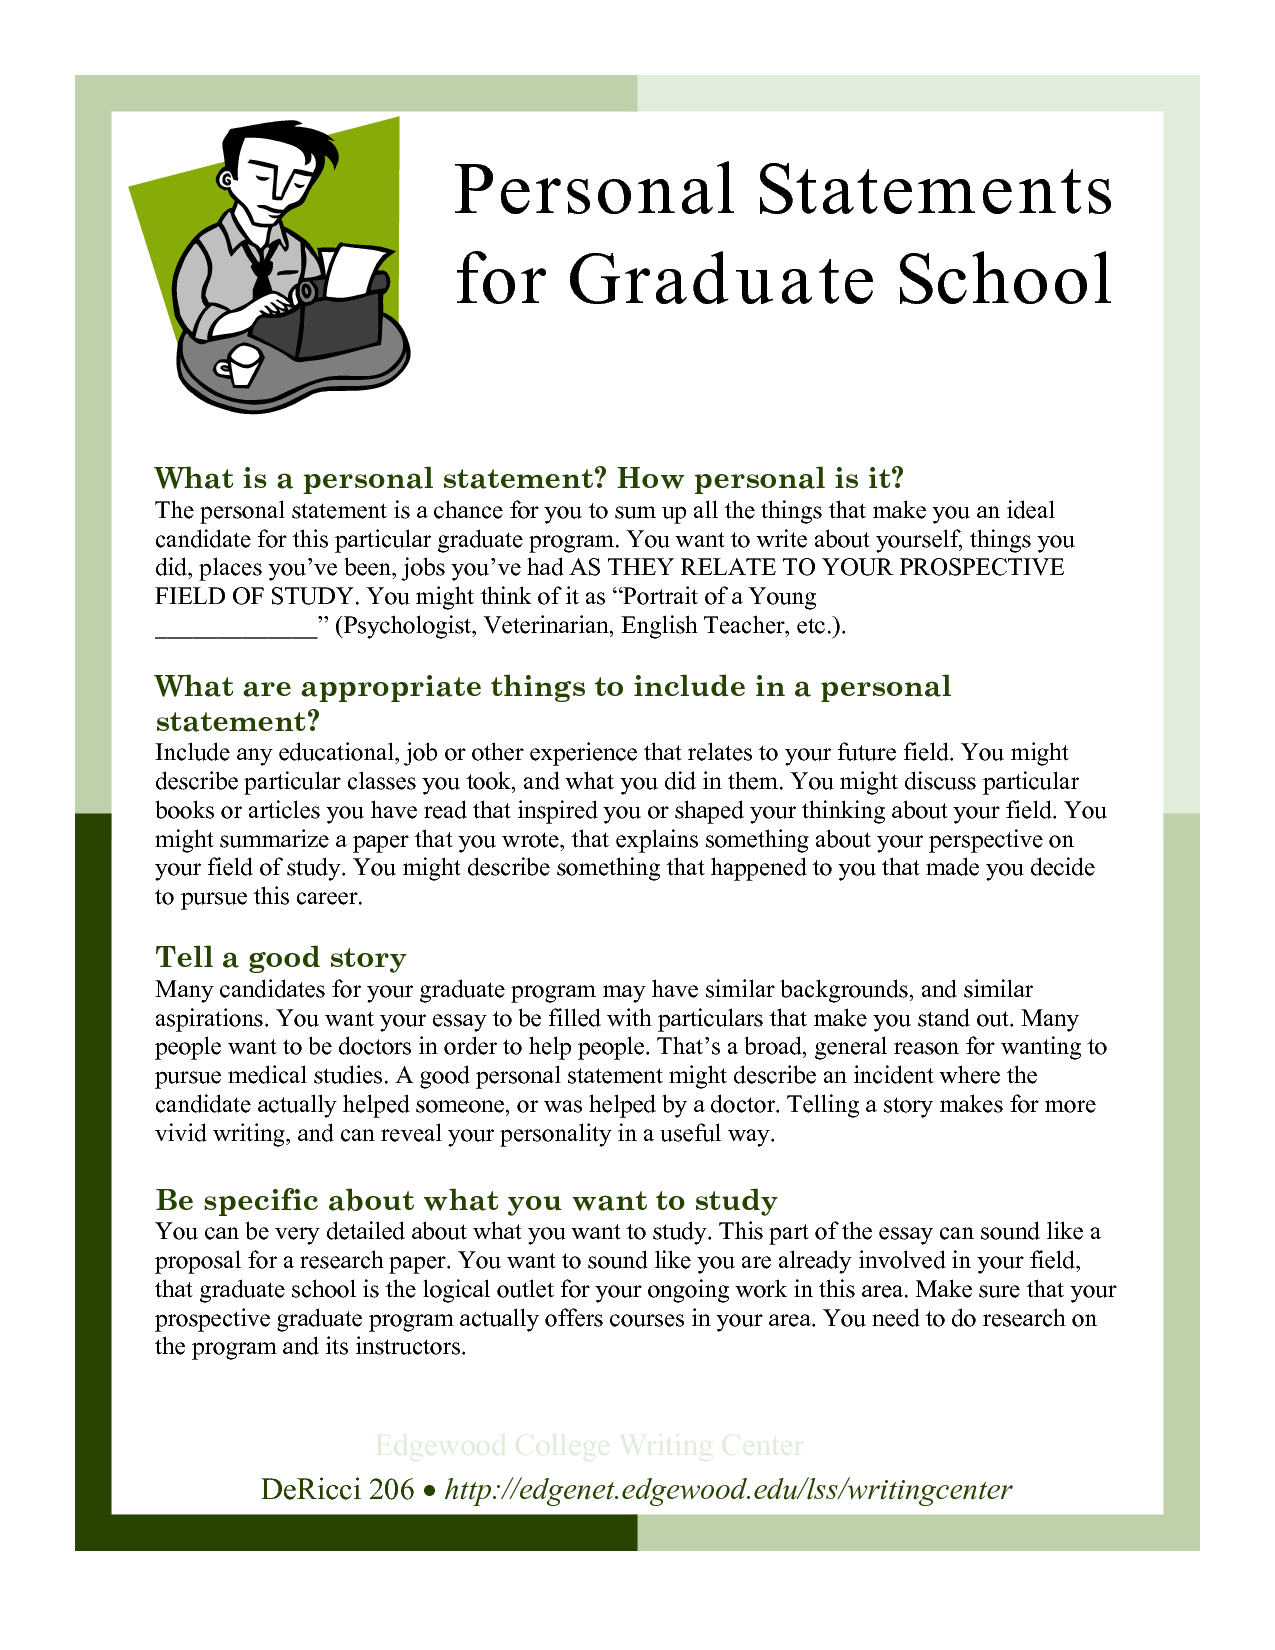 sample personal statements graduate school personal statements for graduate school